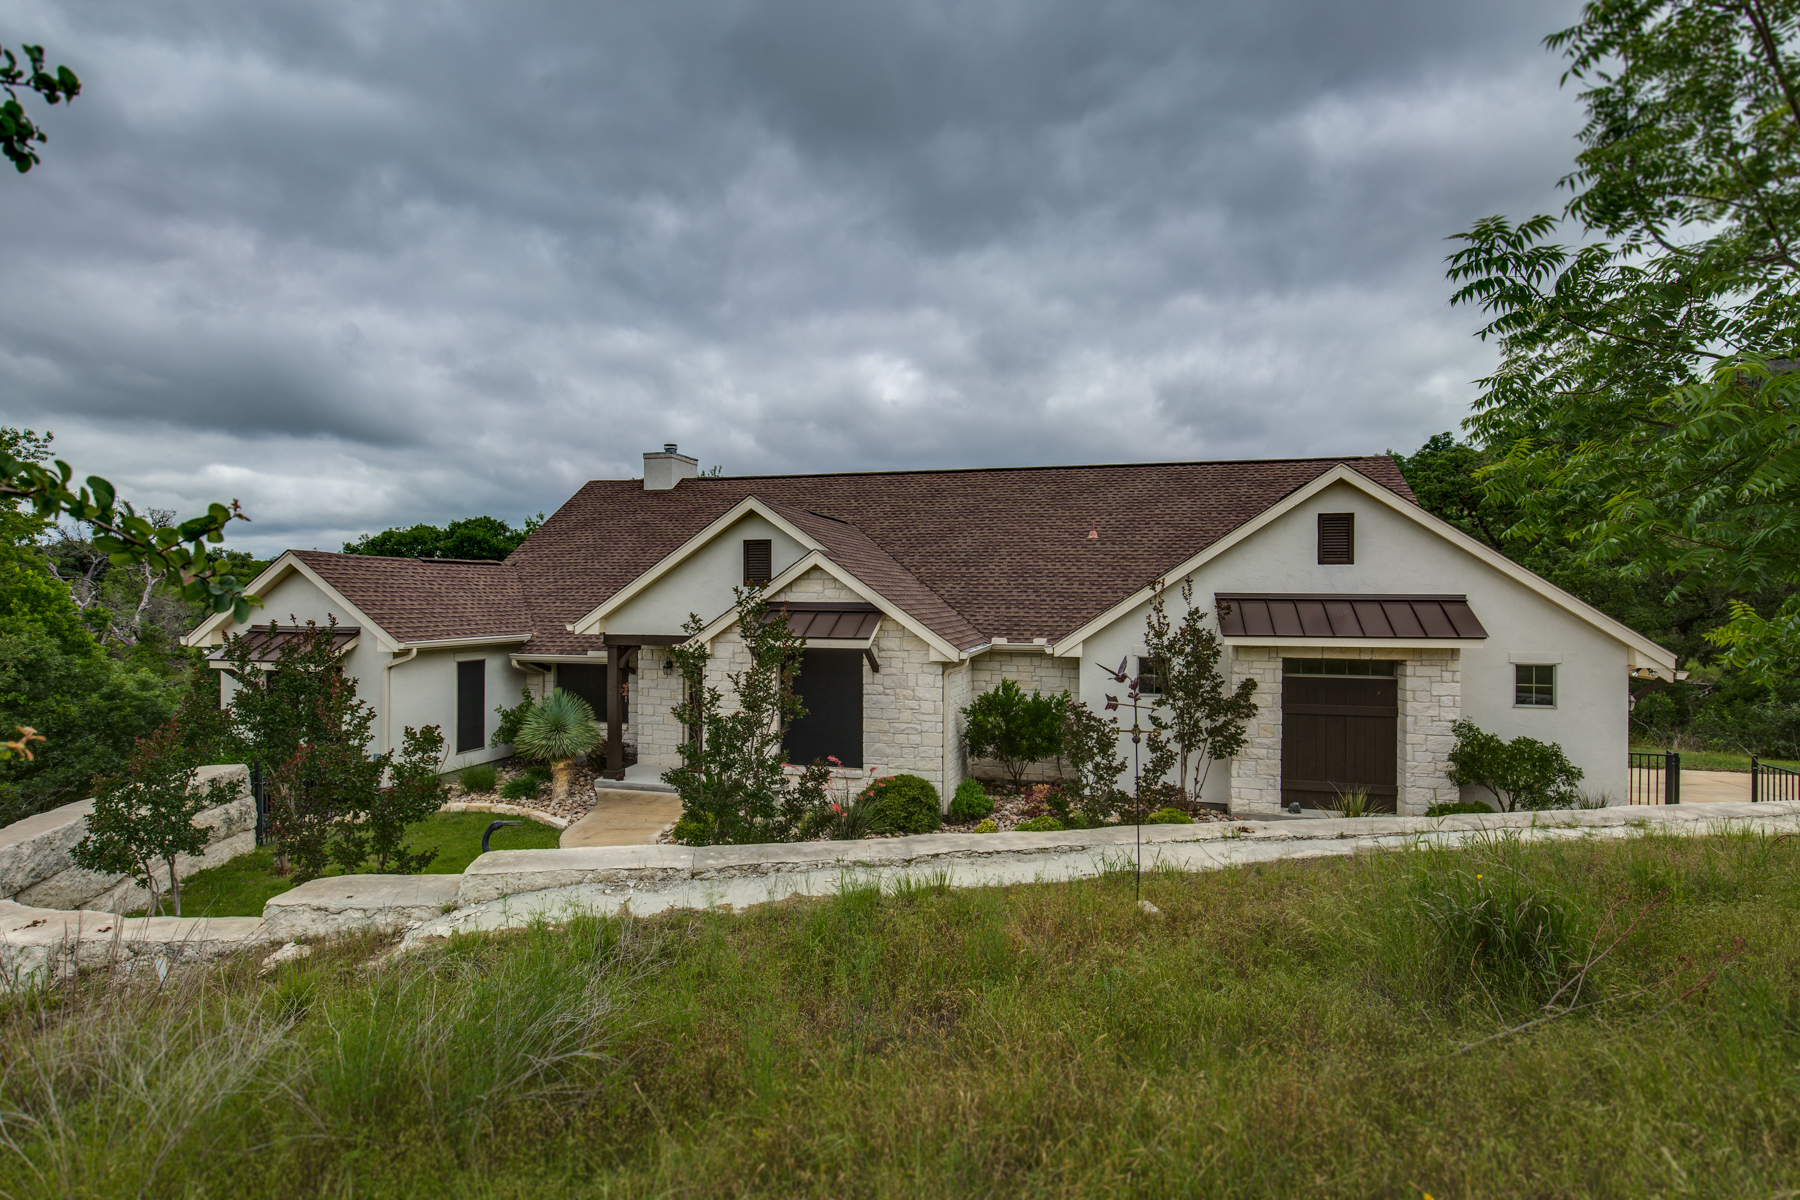 Single Family Home for Sale at A Naturalist's Paradise in Comfort 170 Echo Canyon Dr N Comfort, Texas 78013 United States